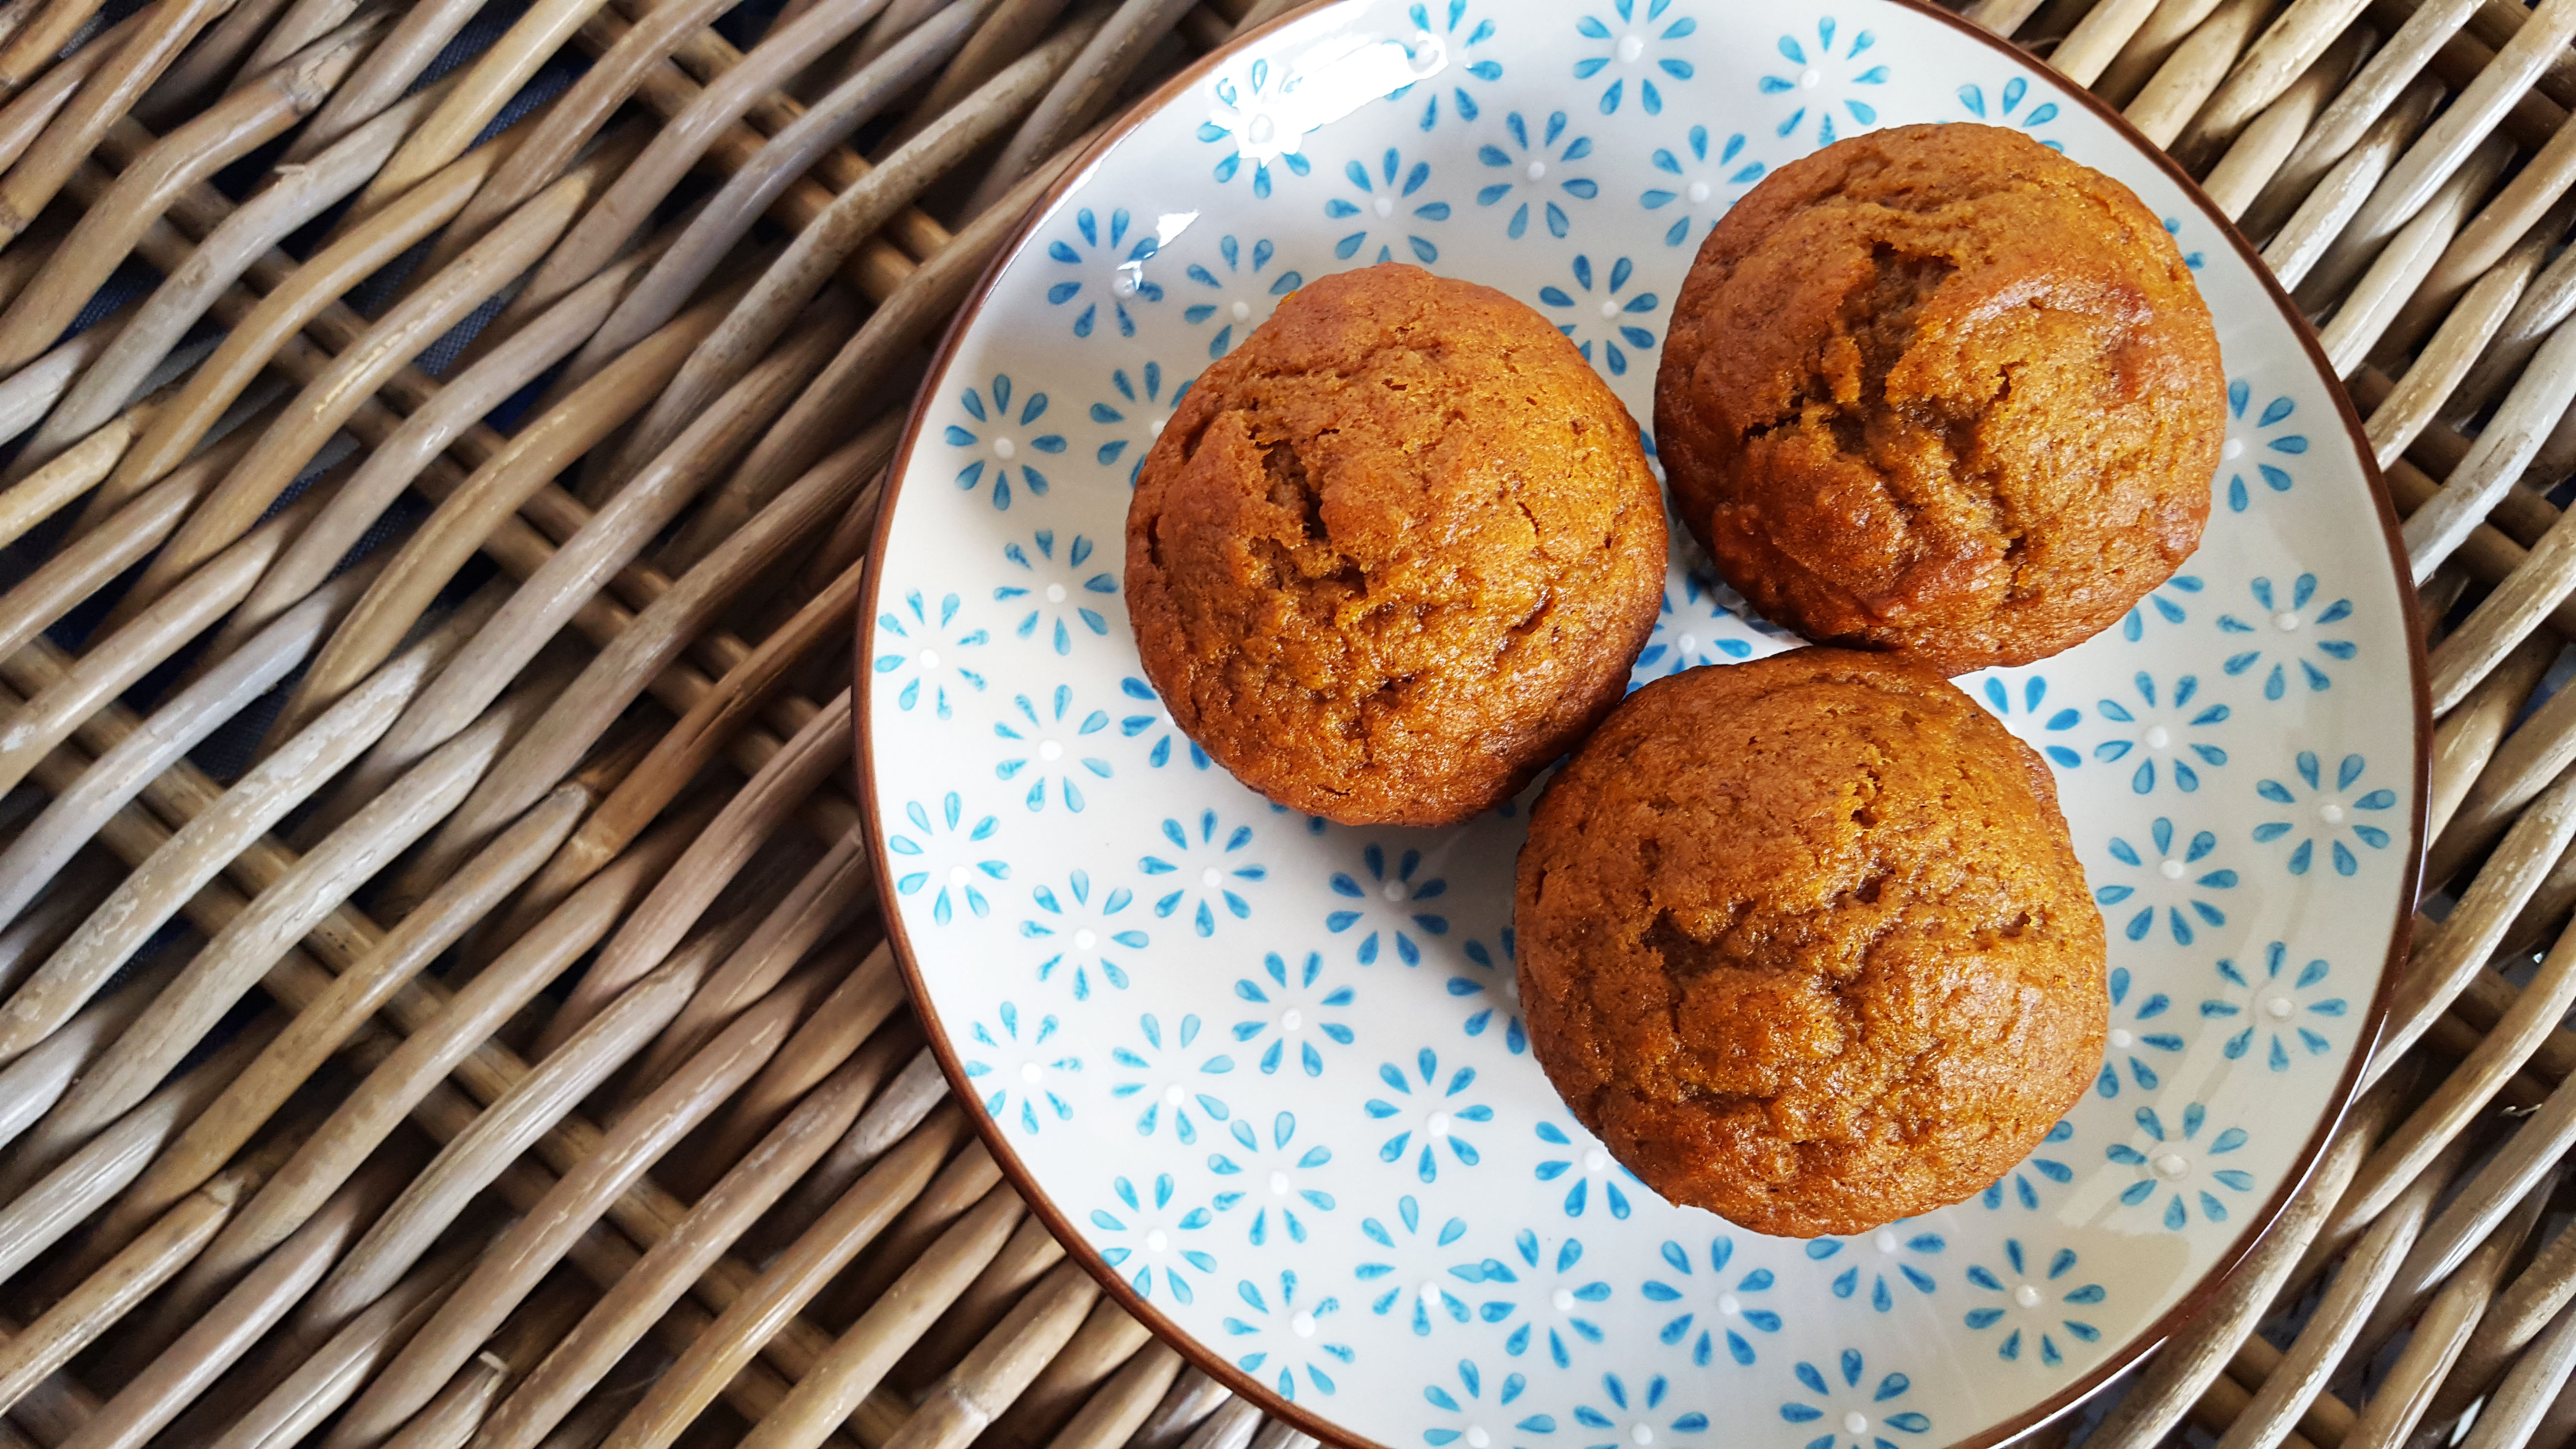 Barefoot Contessa Pumpkin Muffins Quick And Easy Pumpkin Muffins Give Me Meatloaf